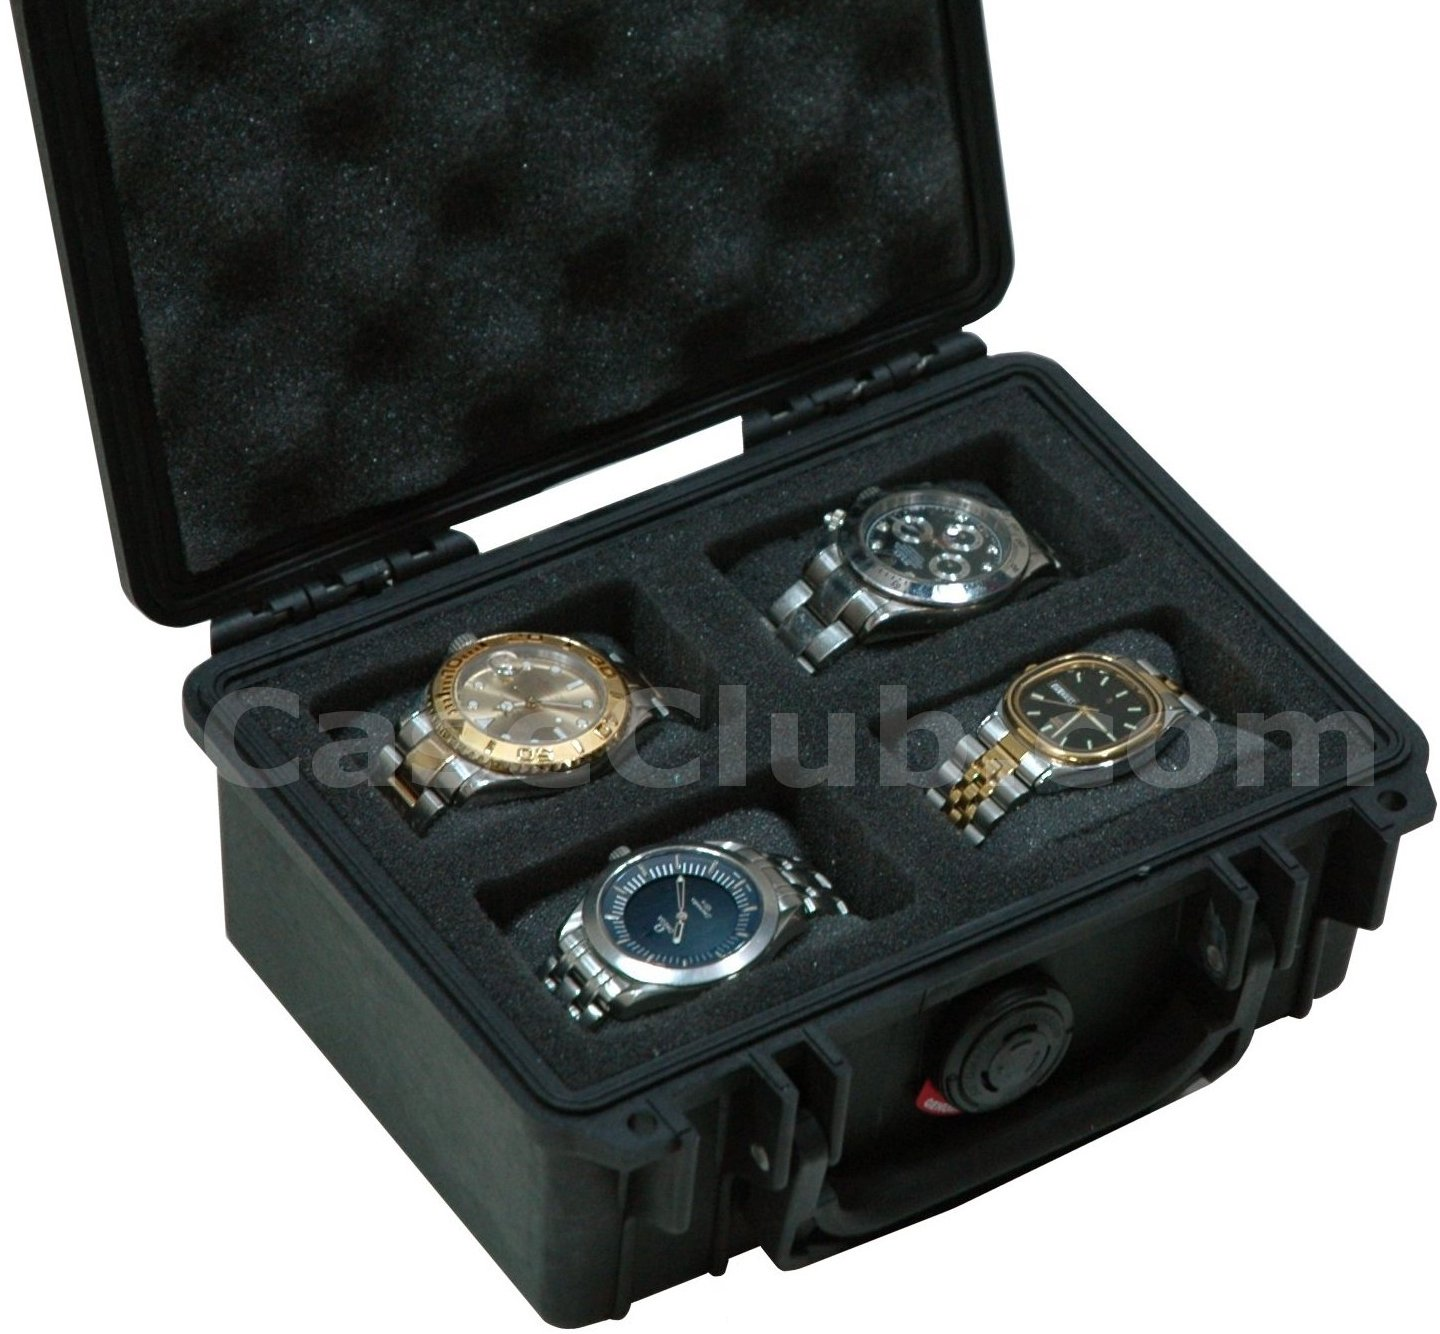 Pelican 1120 Case Custom Foam Example: 4 Watch Case